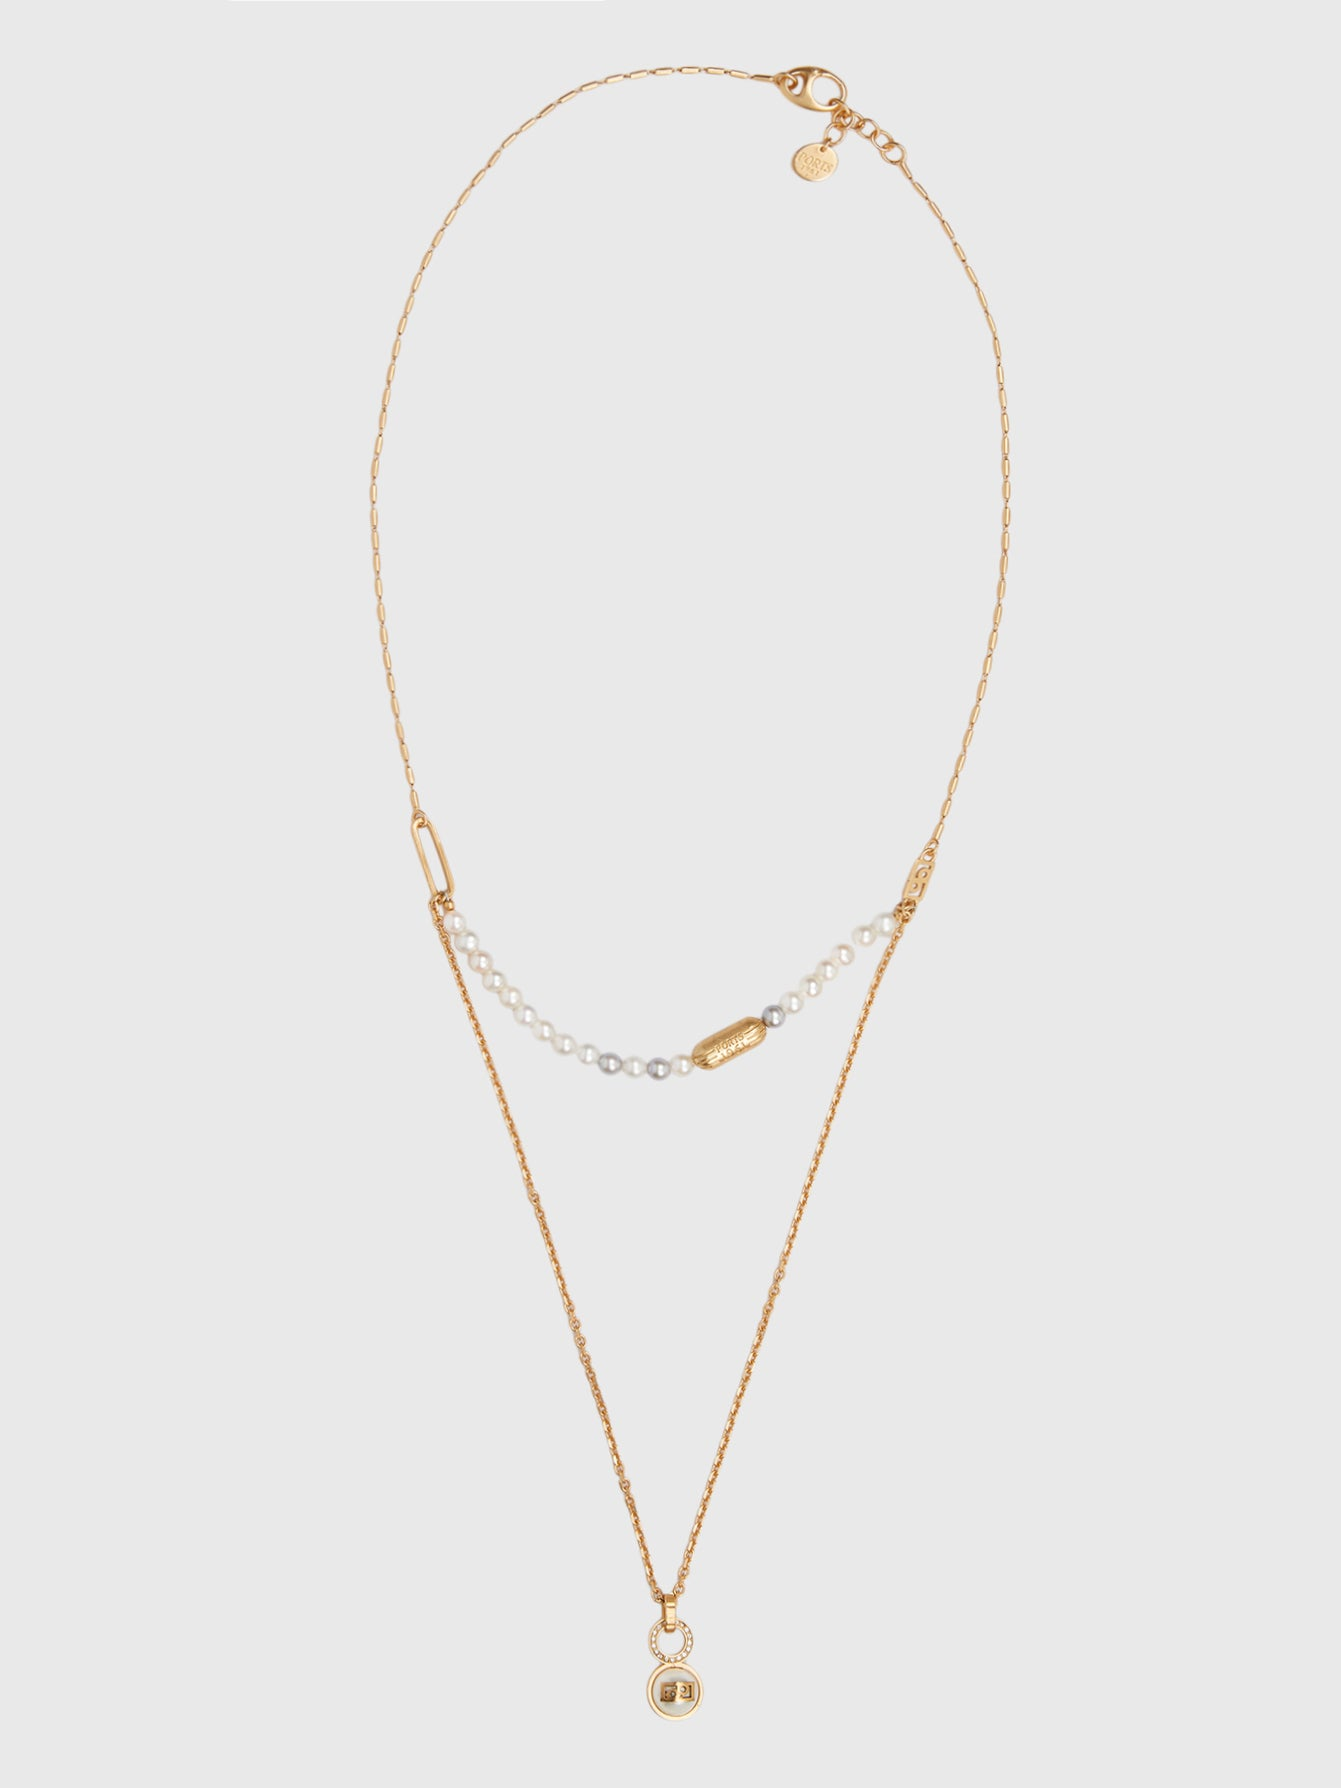 Gold and Pearl Double Length Necklace